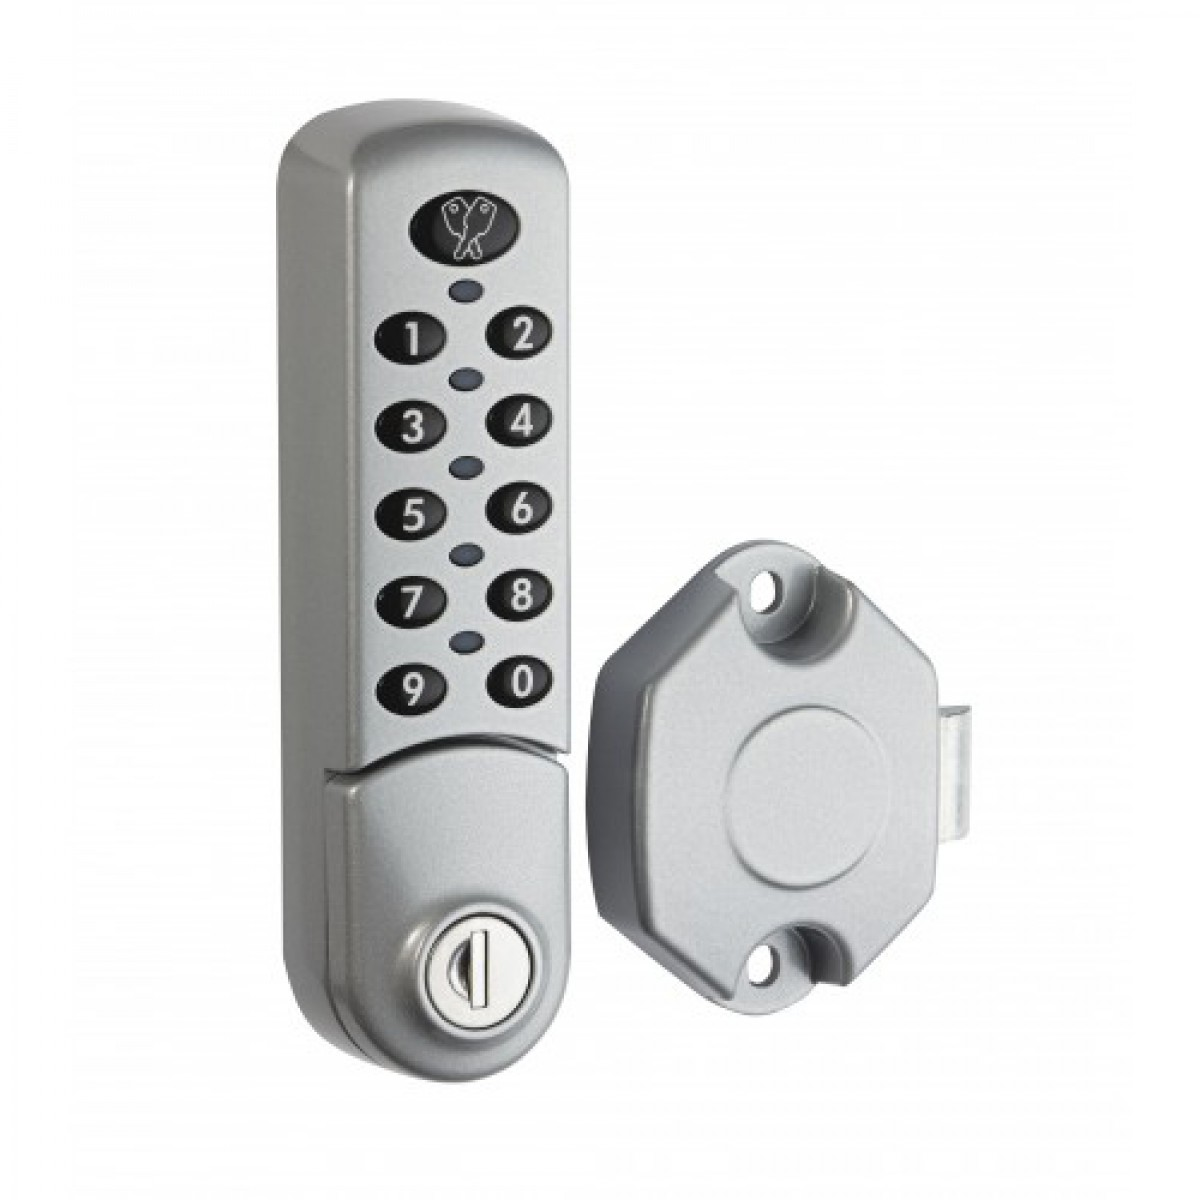 Commercial automatic door lock system